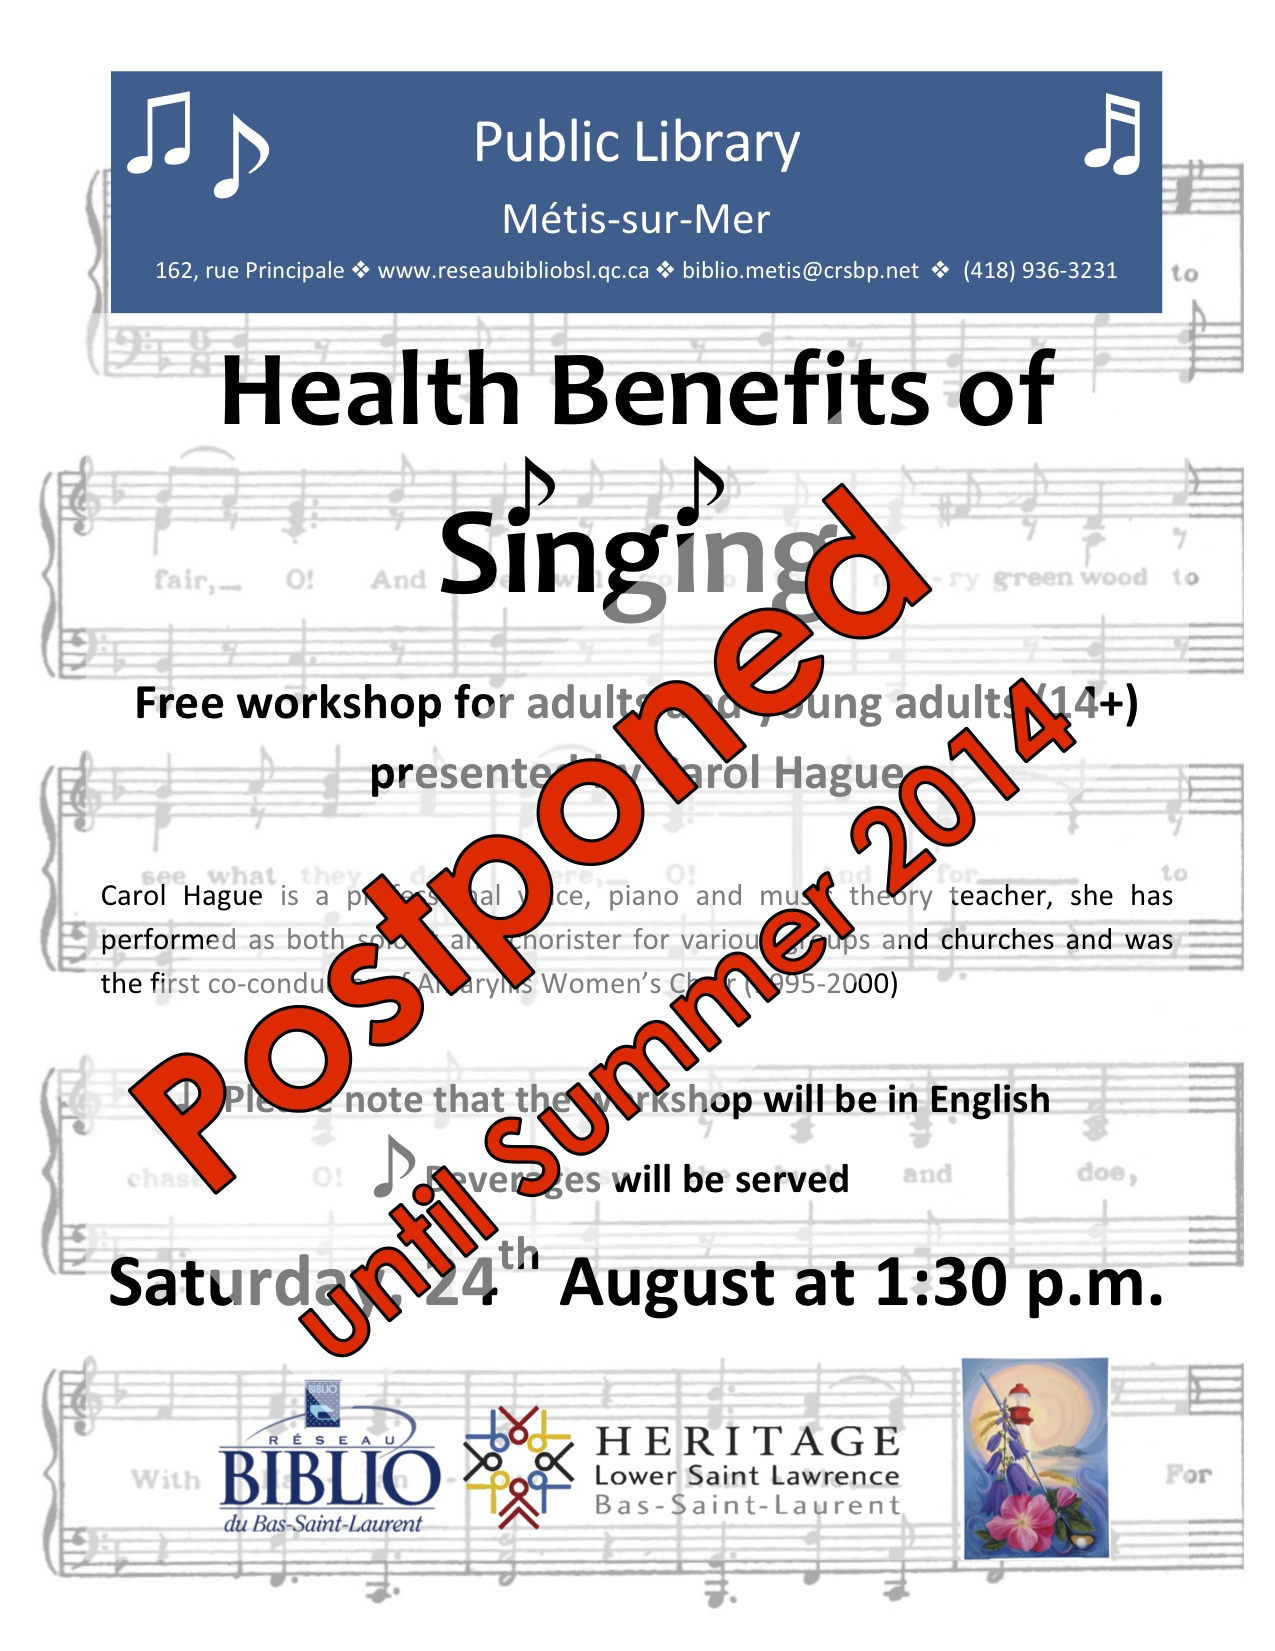 HLSL-Library-Singing Workshop-Aug 2013-postponed